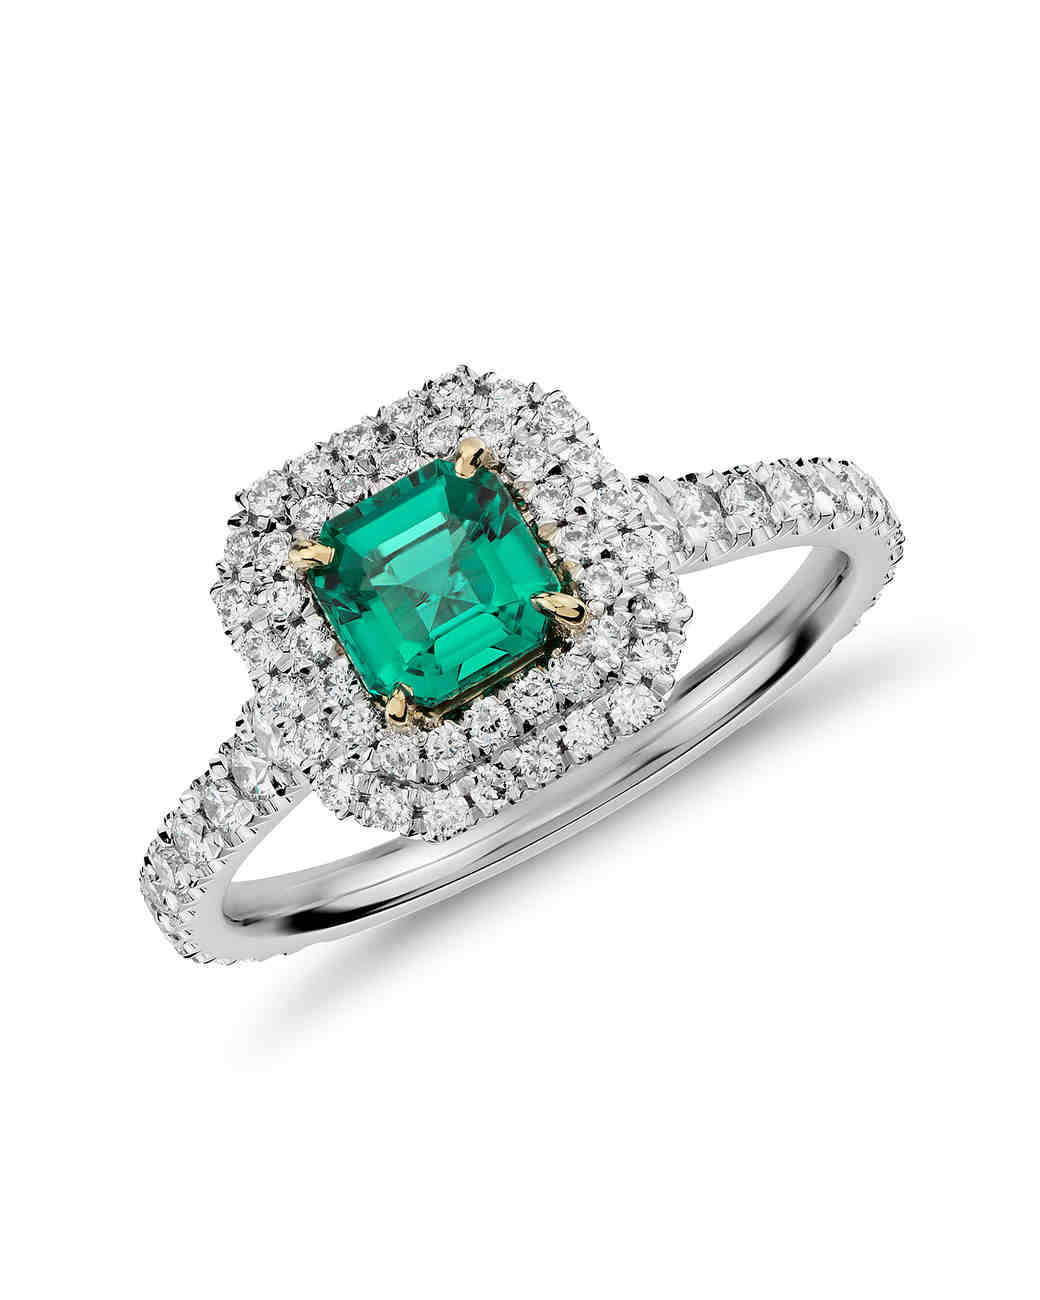 colored-engagement-rings-blue-nile-emerald-diamonds-0316.jpg